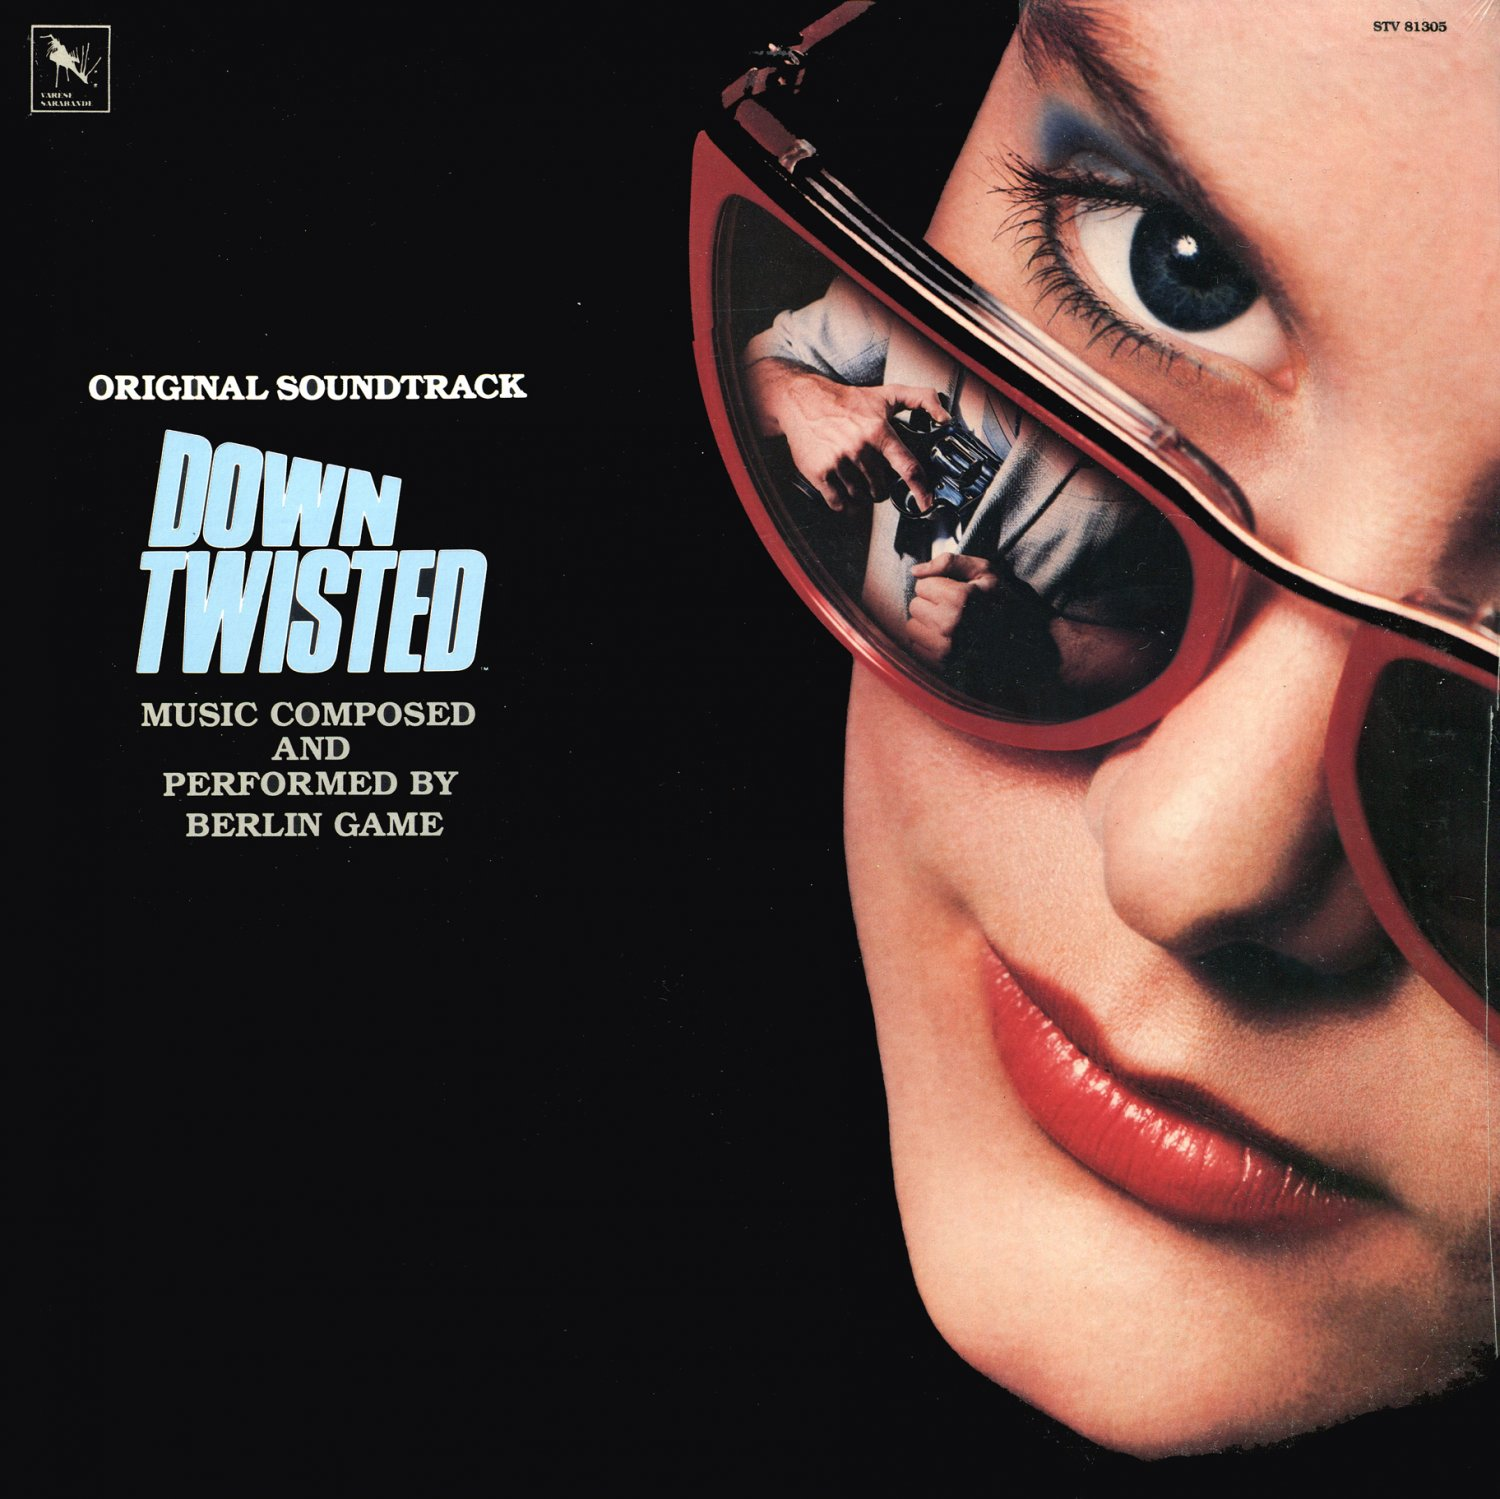 Down Twisted - Original Soundtrack, Berlin Game OST LP/CD